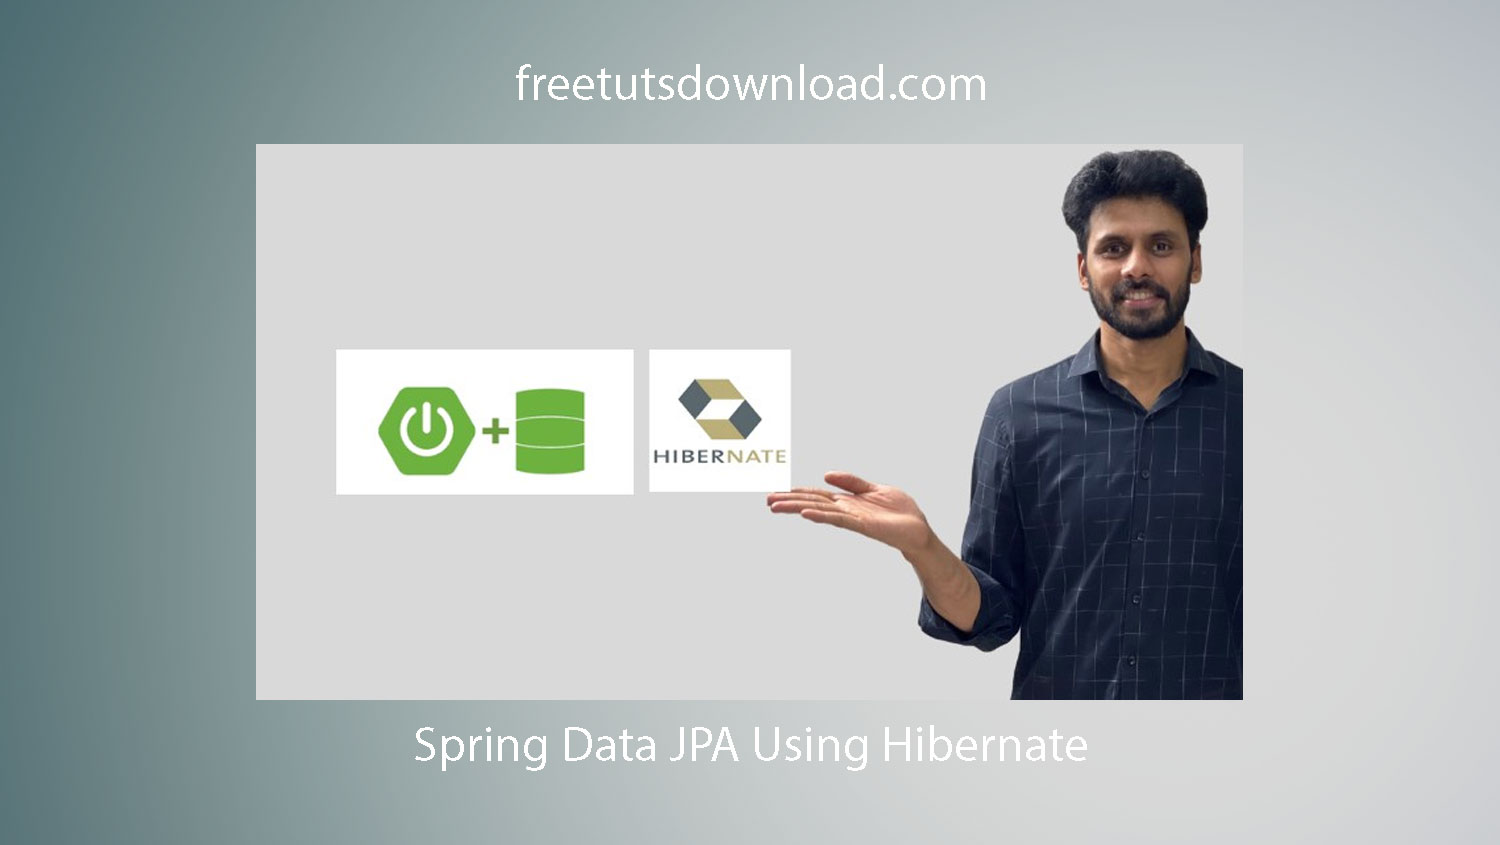 Spring Data JPA Using Hibernate Free Download